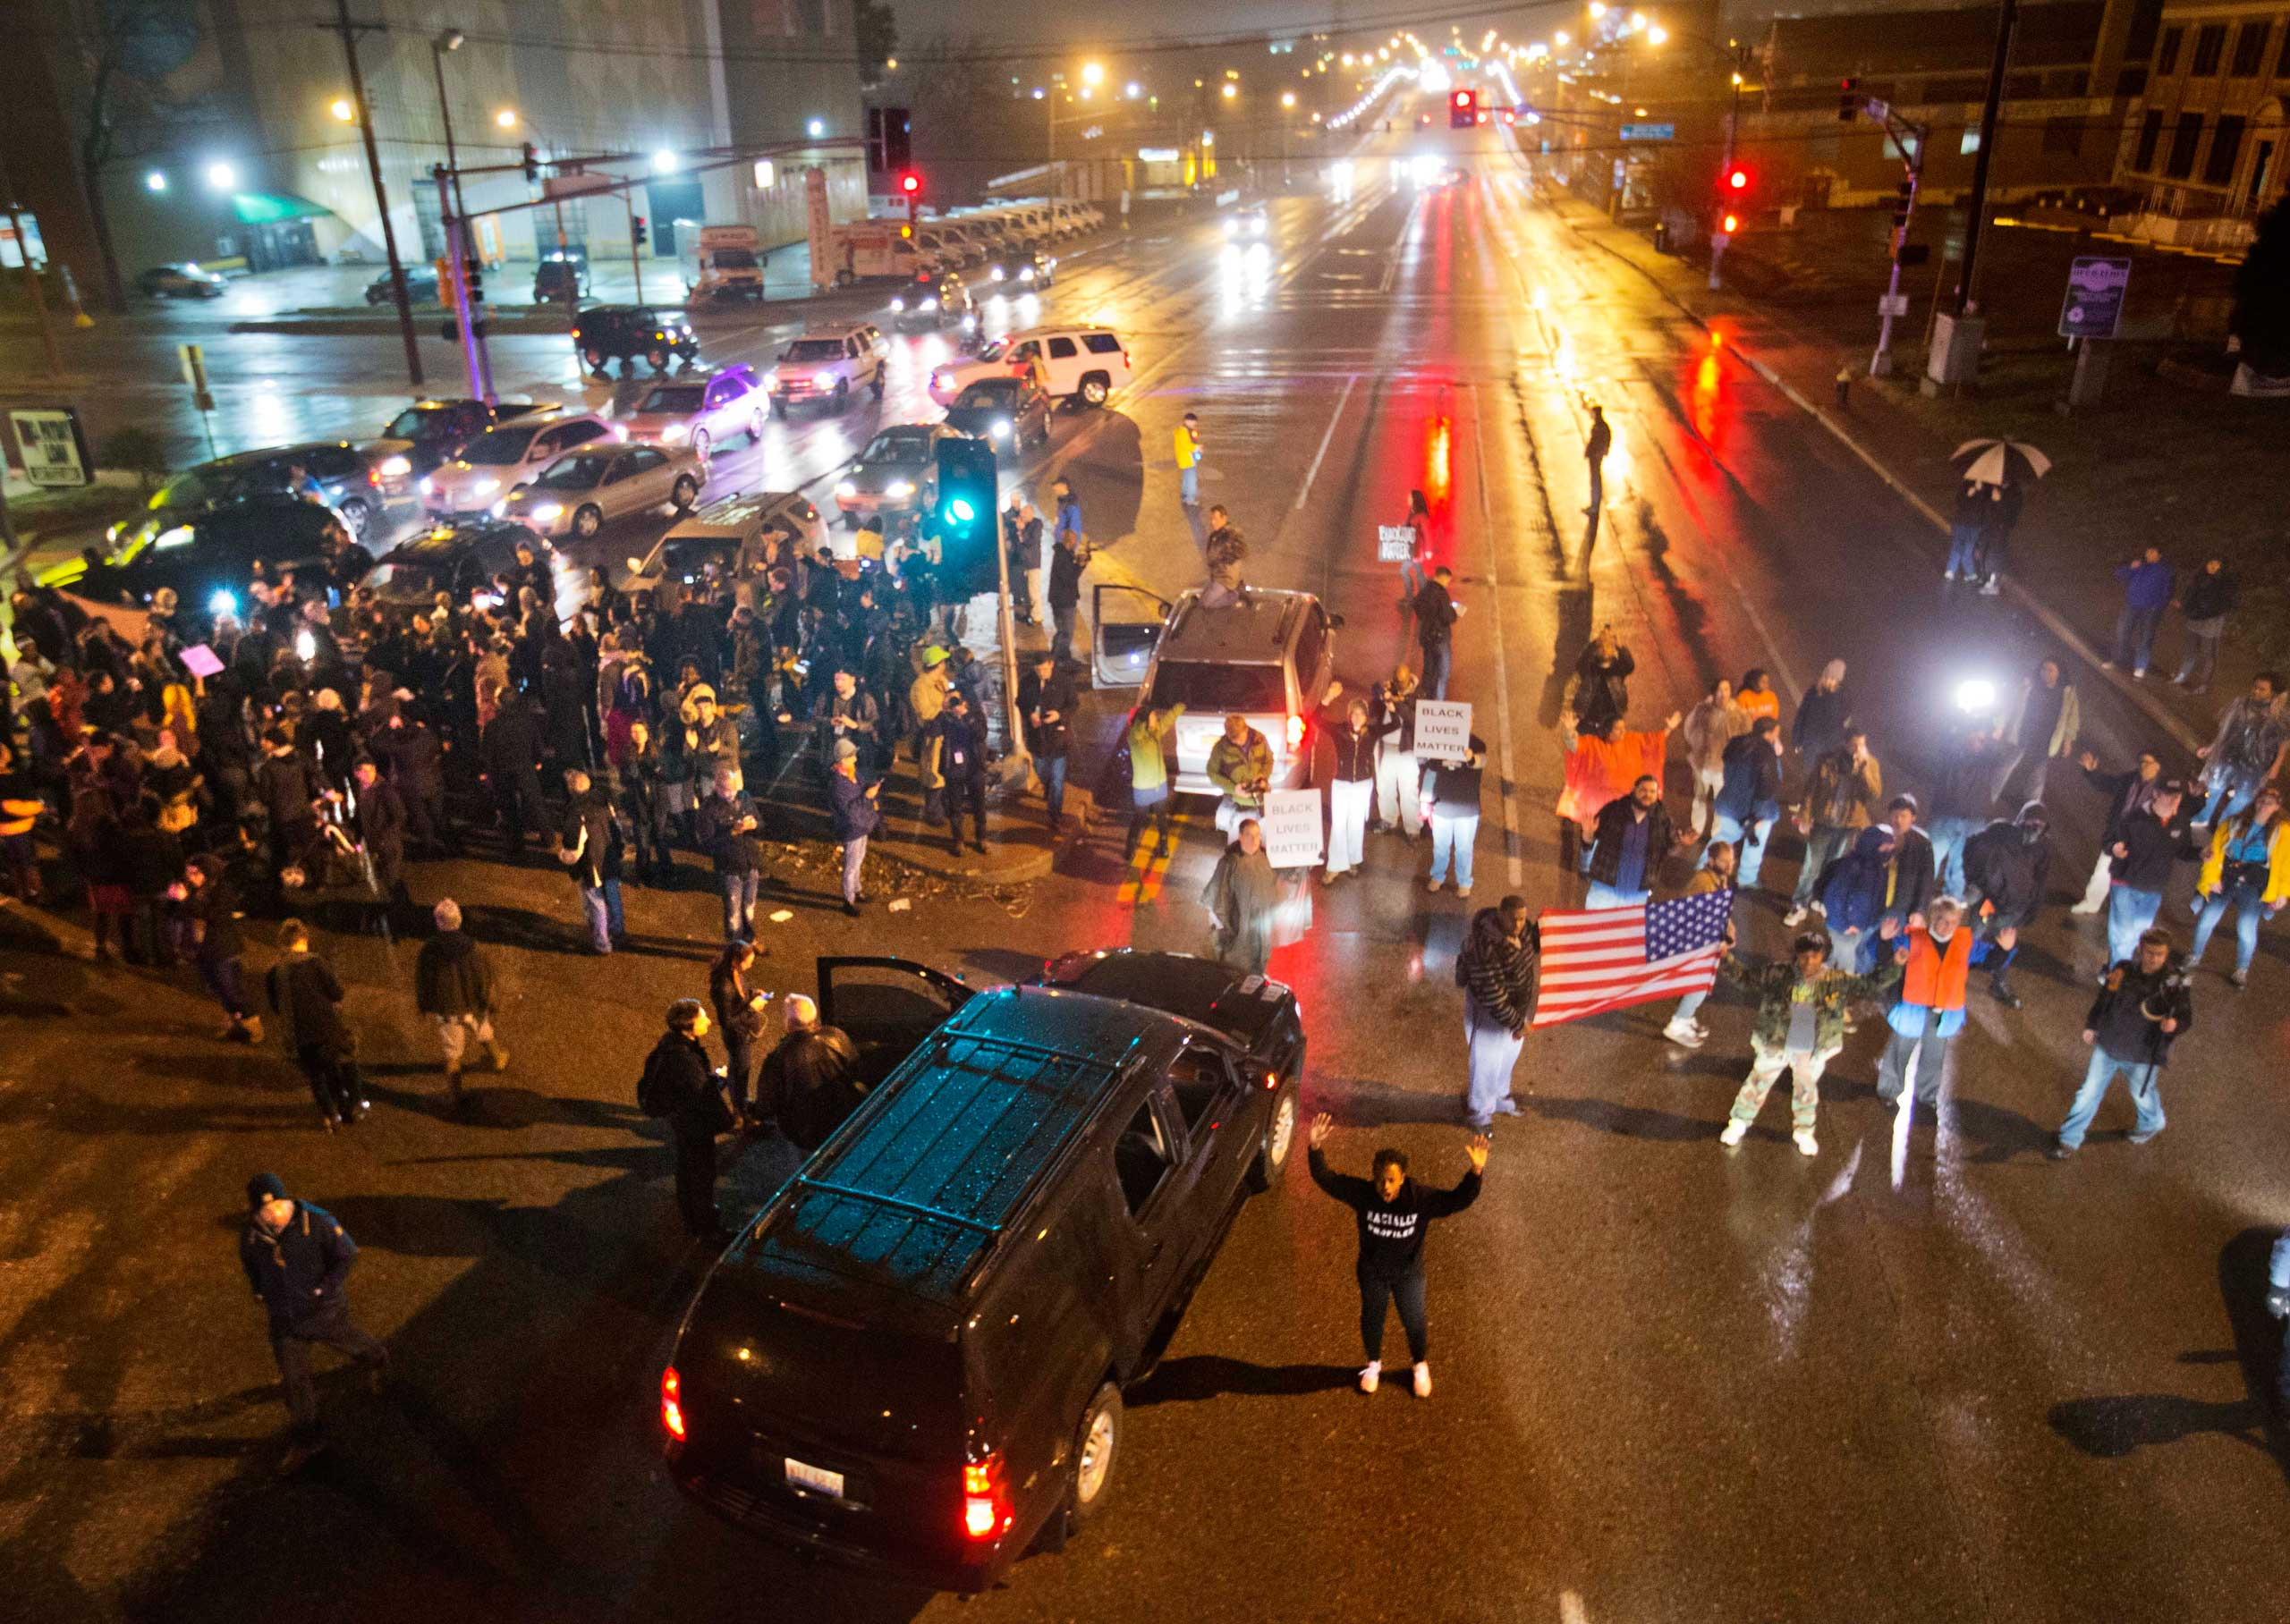 Demonstrators block a busy intersection while marching through the streets to protest the shooting of Michael Brown, in St. Louis on Nov. 23, 2014